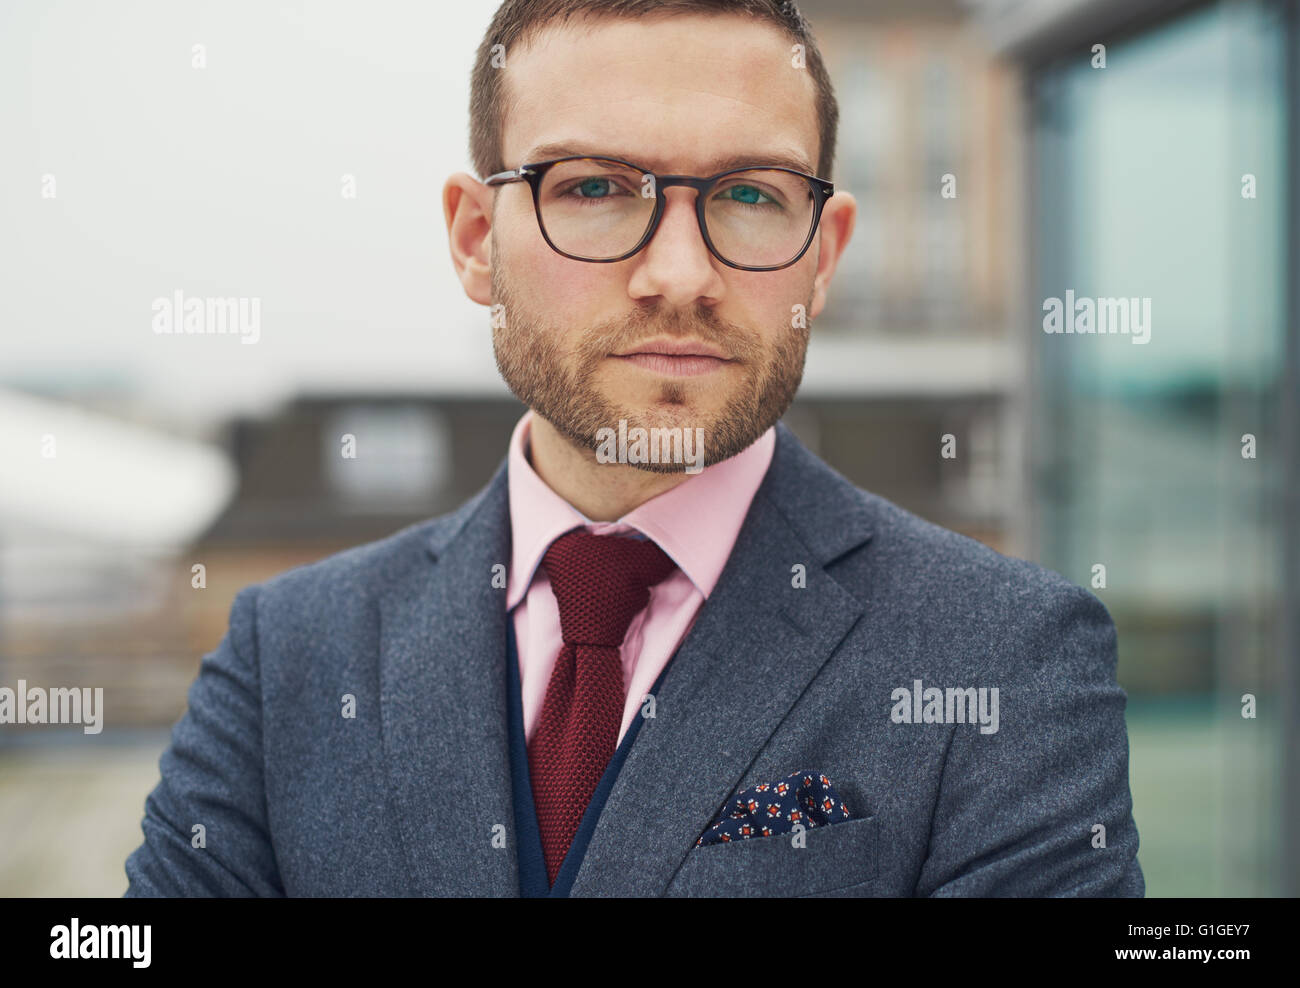 Thoughtful businessman staring intently at the camera with a serious inscrutable expression, close up cropped head - Stock Image